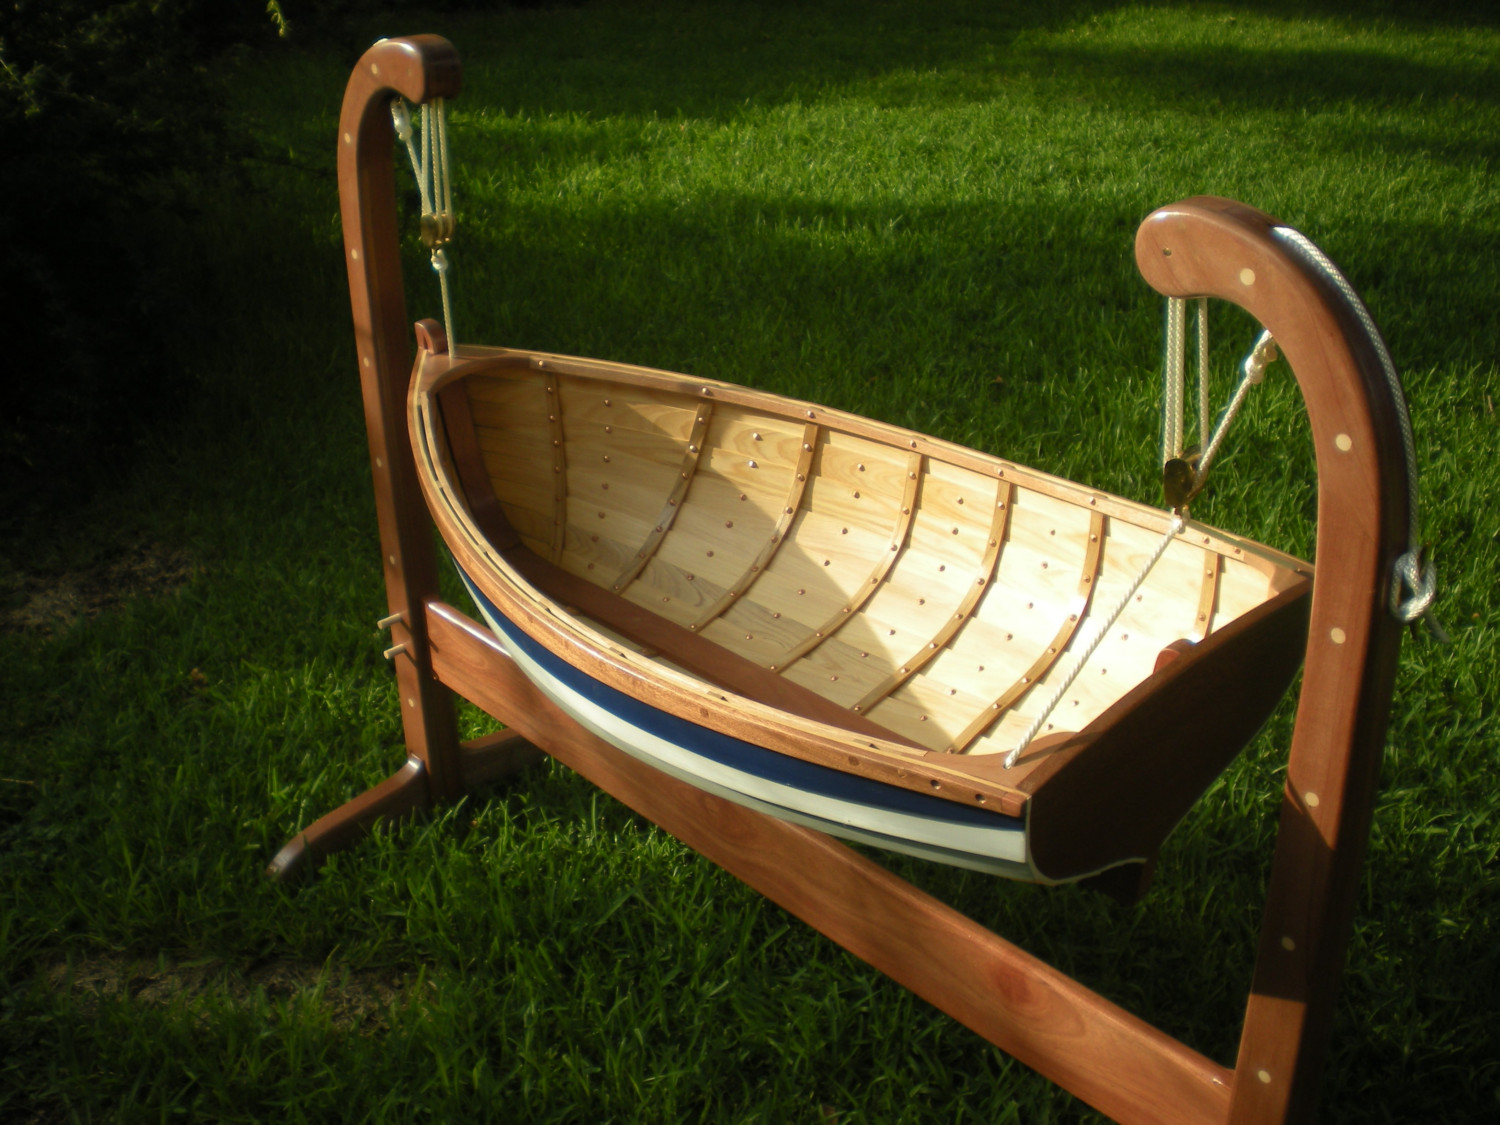 Custom Made Beds Image Gallery: Beach House Living: Baby's First Boat